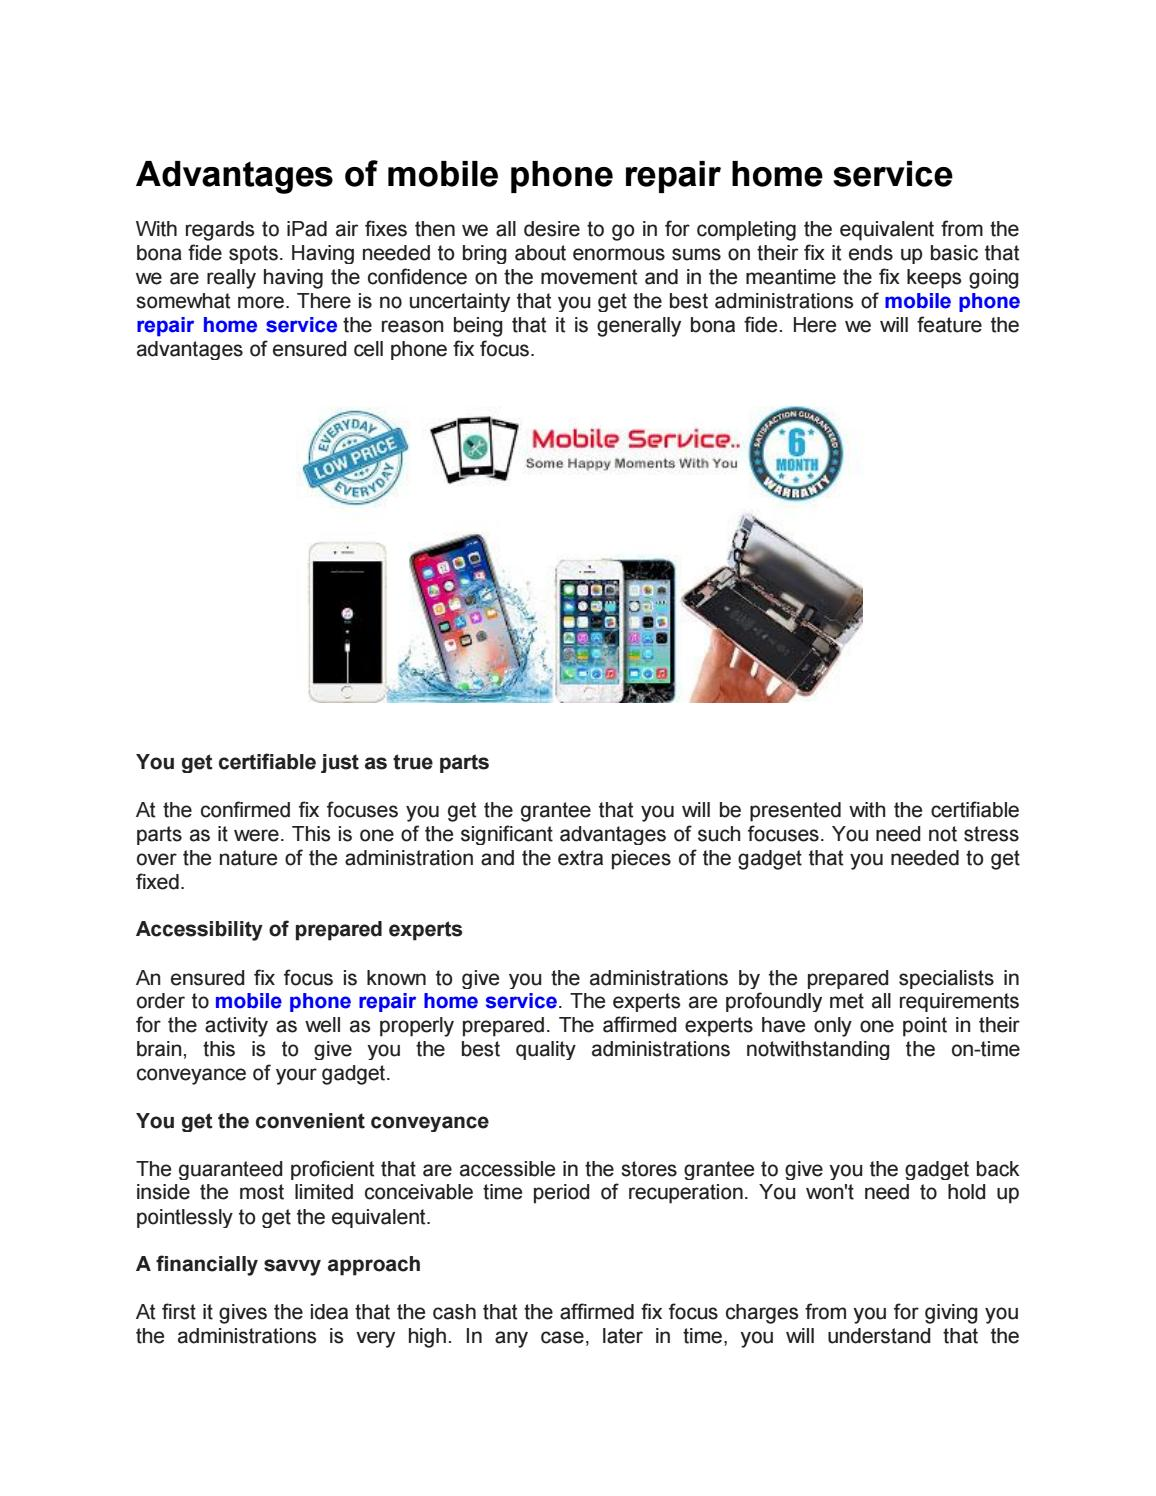 Advantages Of Mobile Phone Repair Home Service By Jackeric1 Issuu